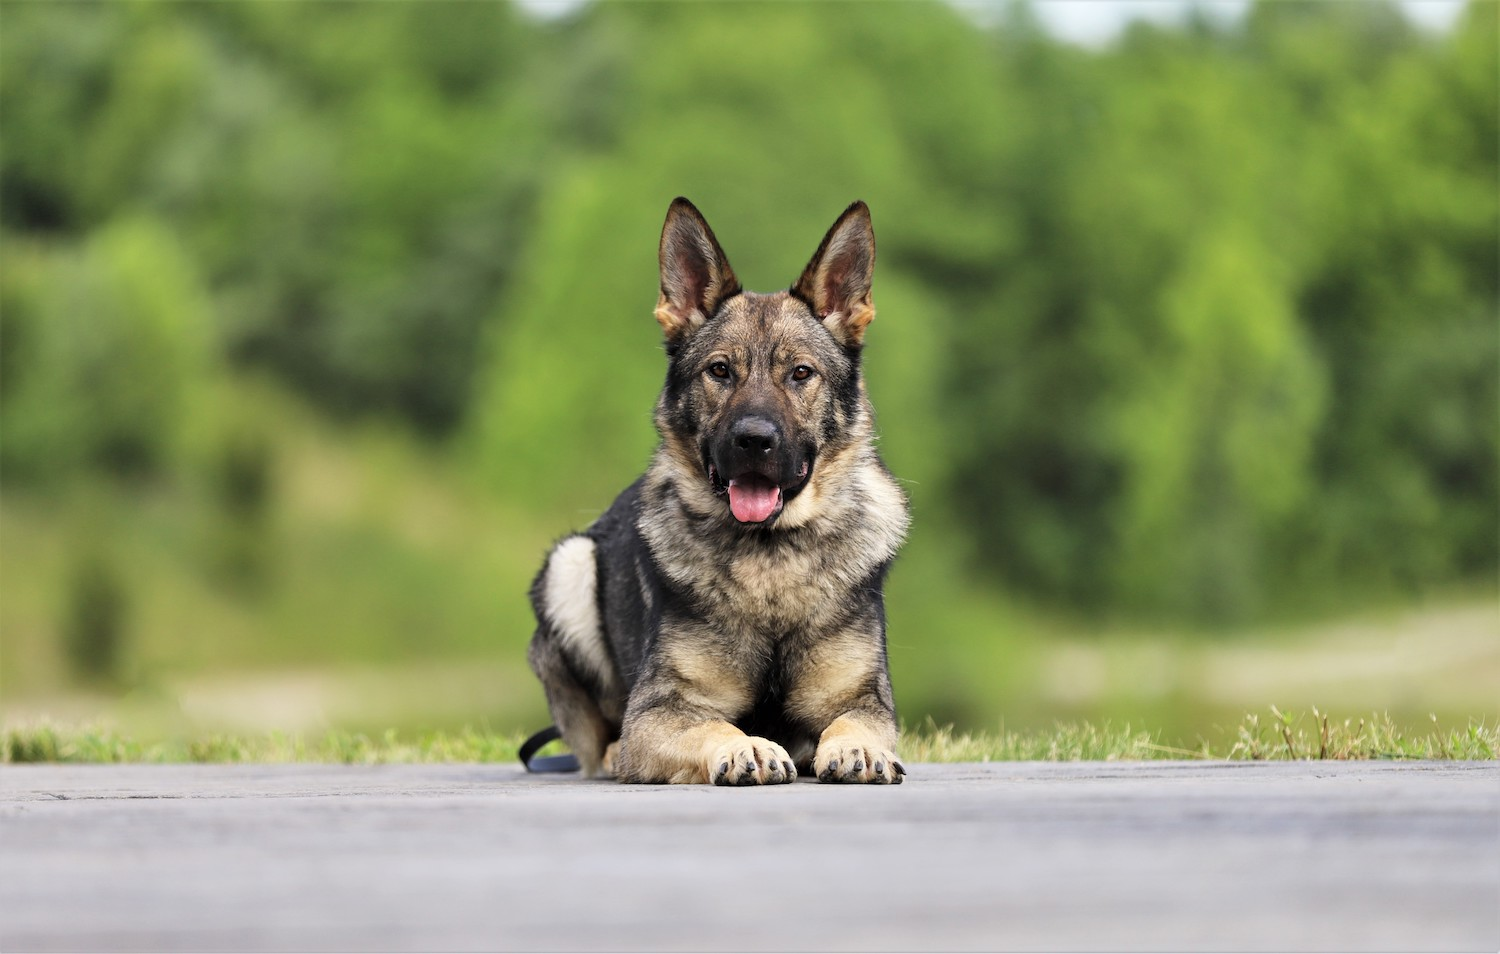 types of protections dogs